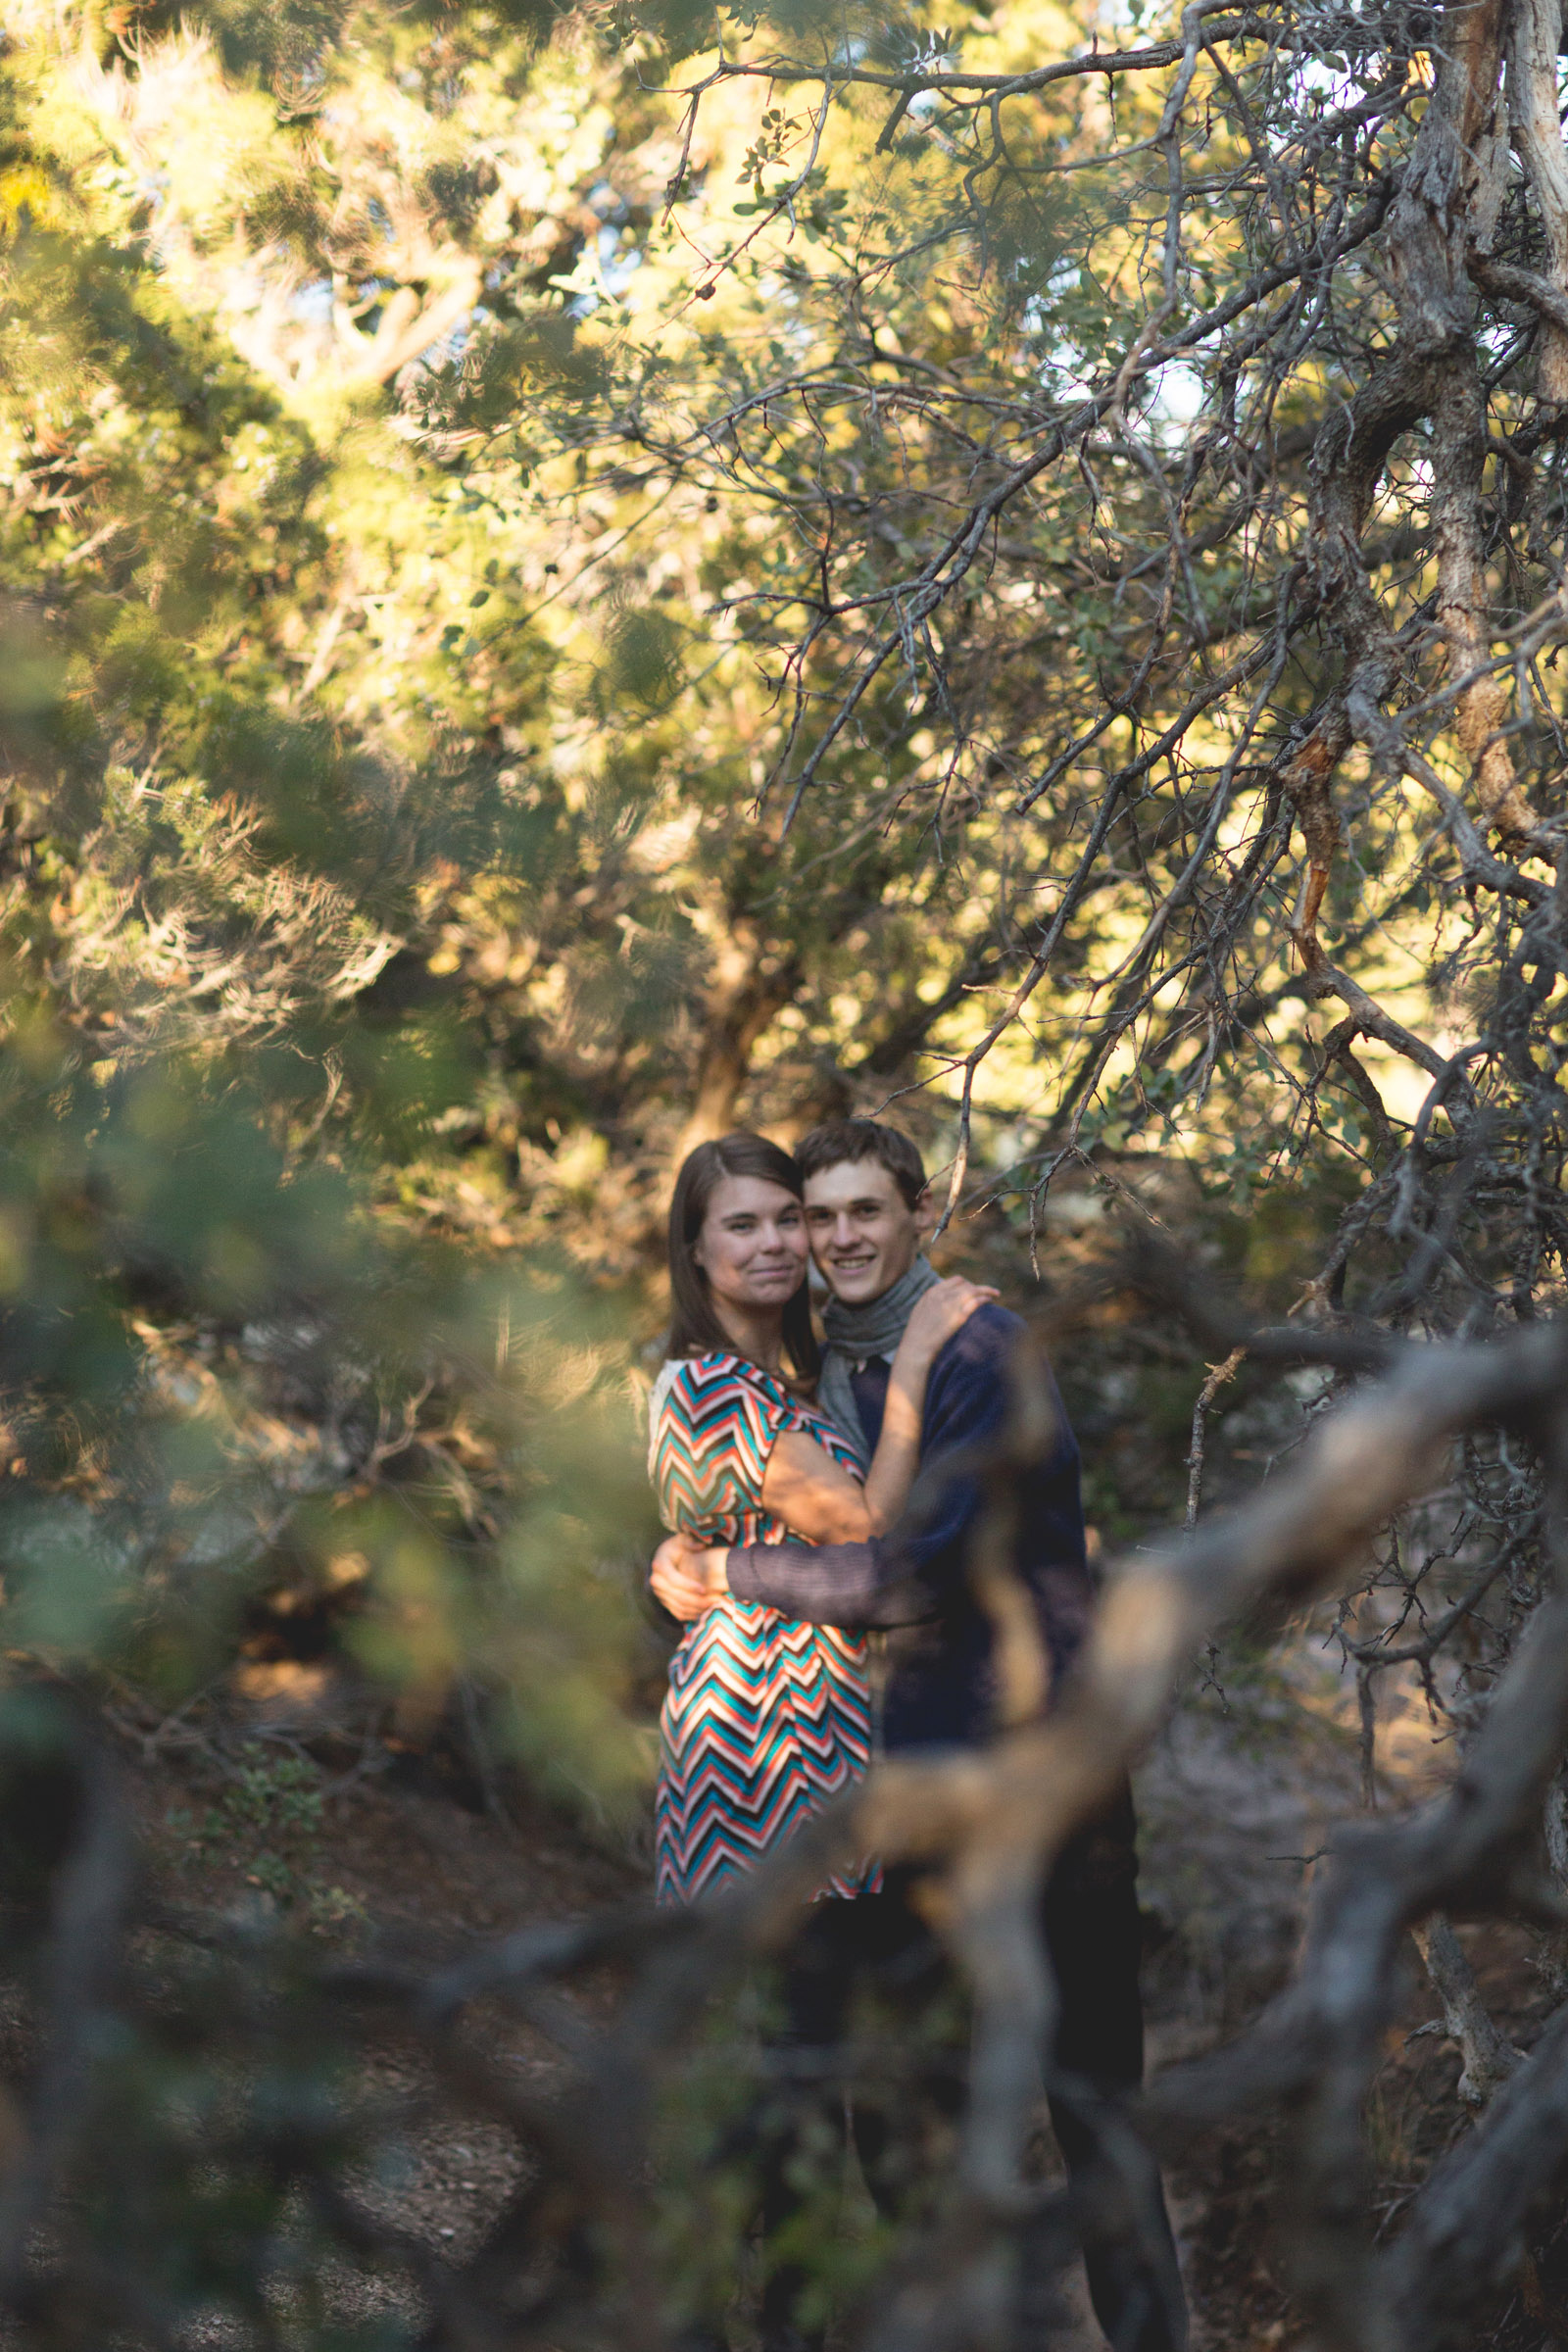 048-engagement-photographers-in-nm-farmington-and-albuquerque